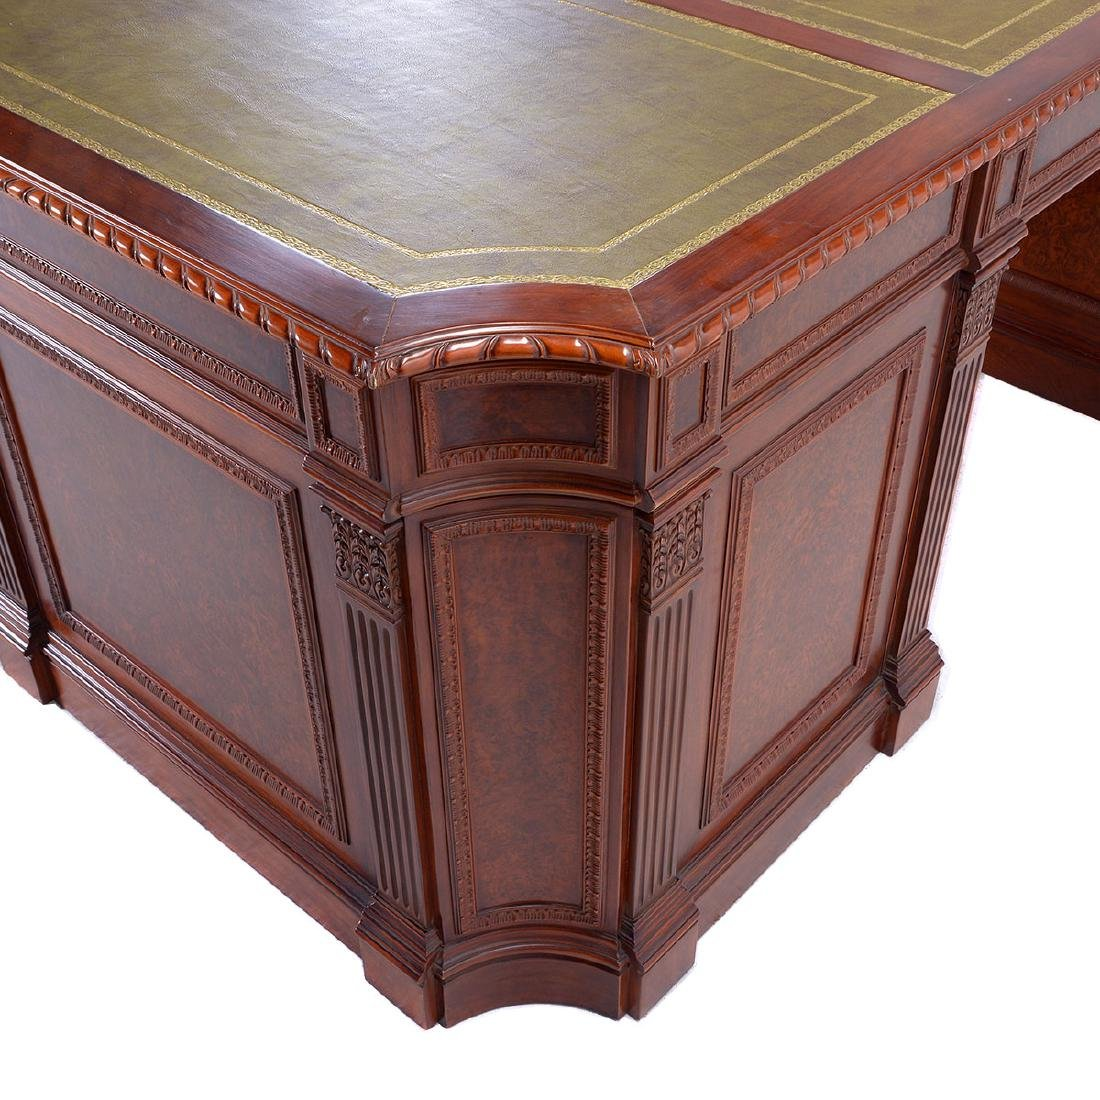 Renaissance Revival Double Pedestal Desk Inset with - 6